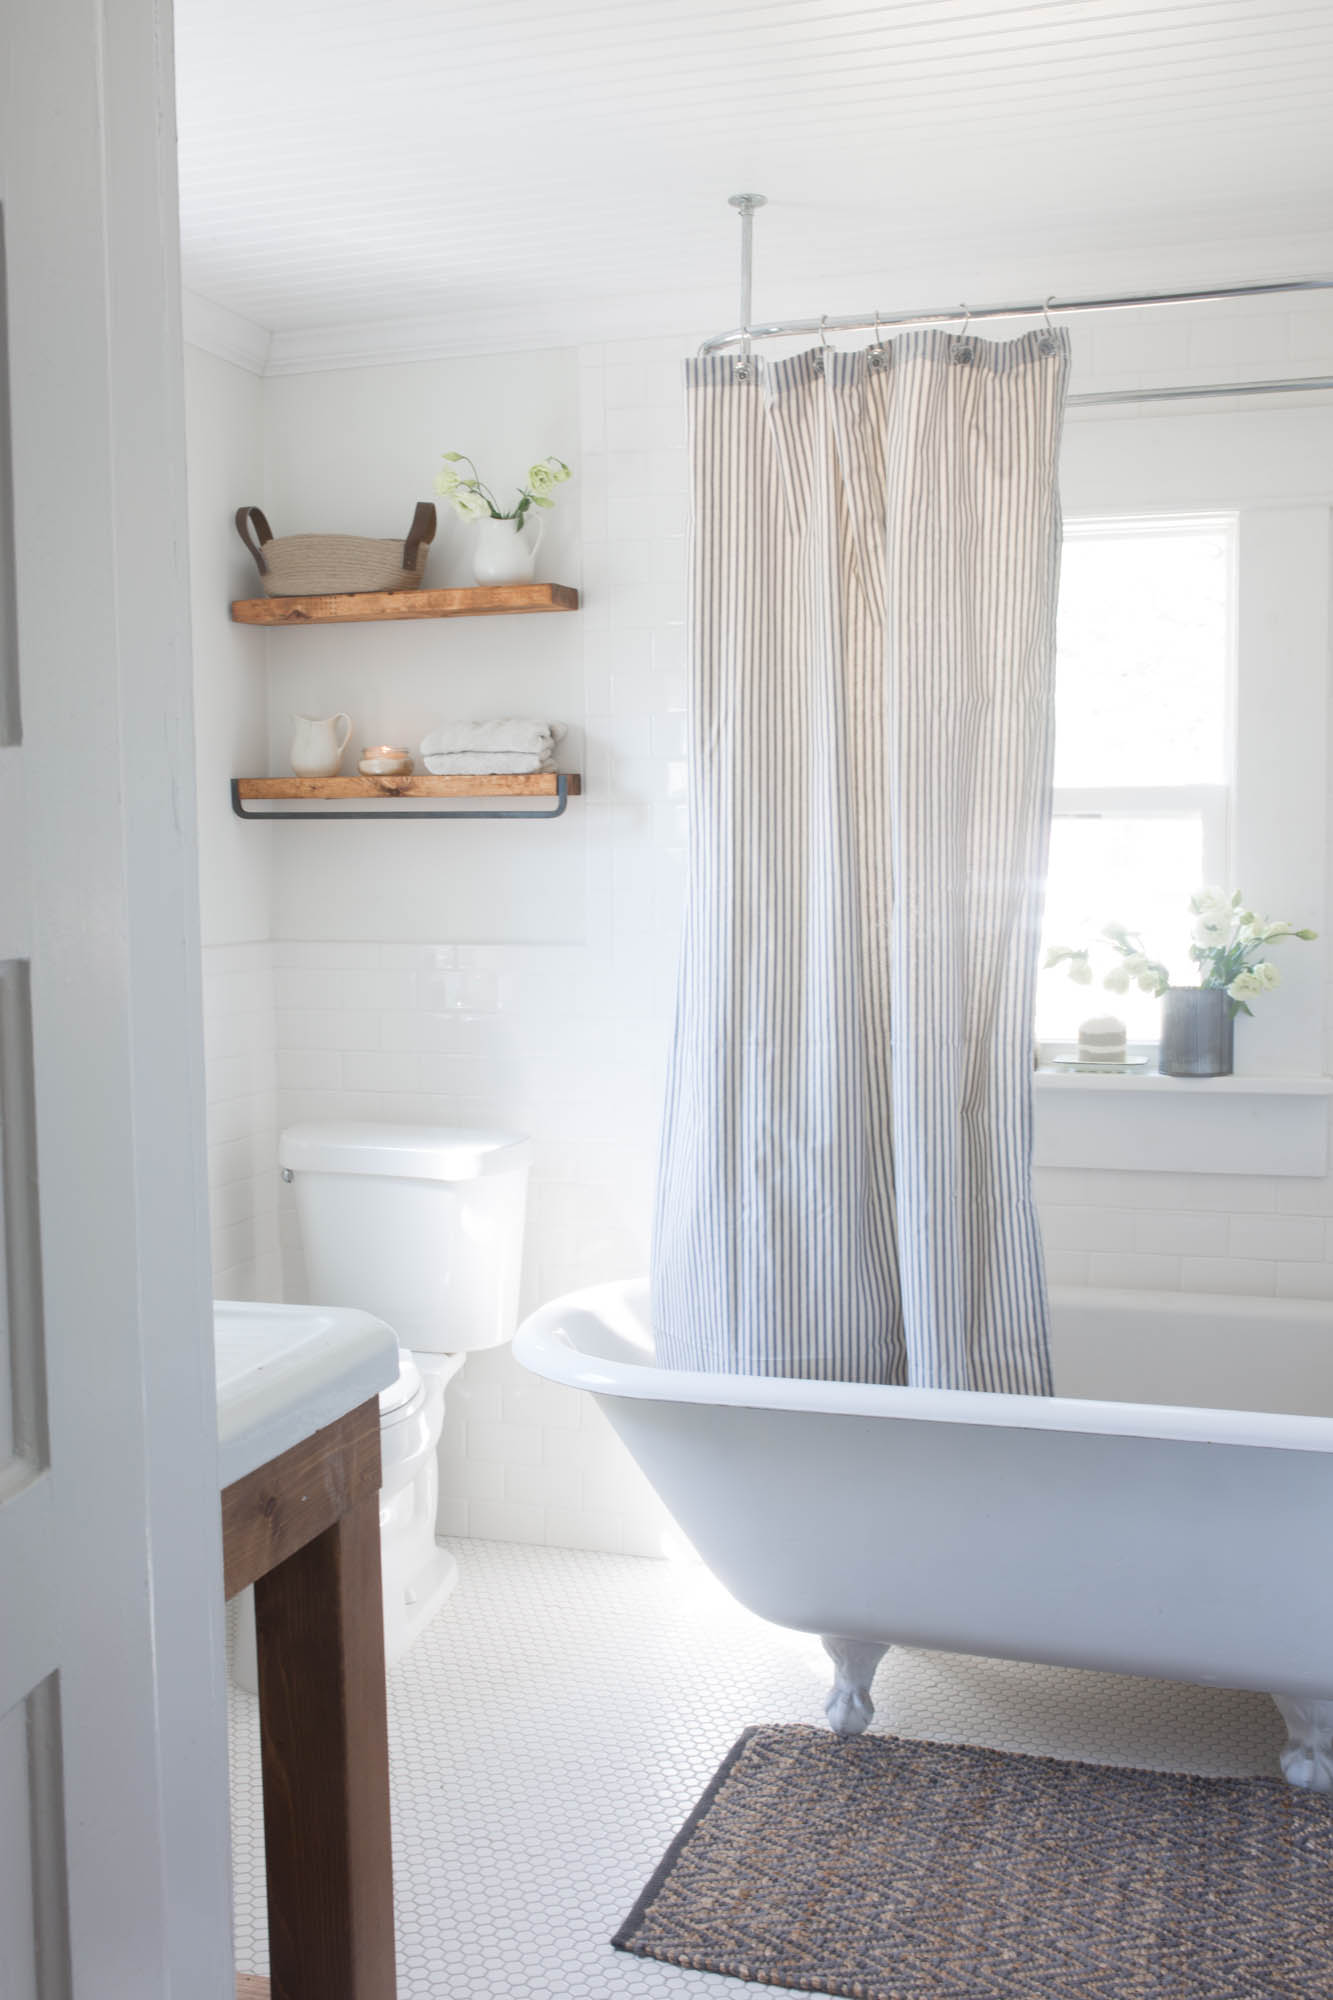 This simple and minimal farmhouse style bathroom is so sleek, making it a gorgeous space